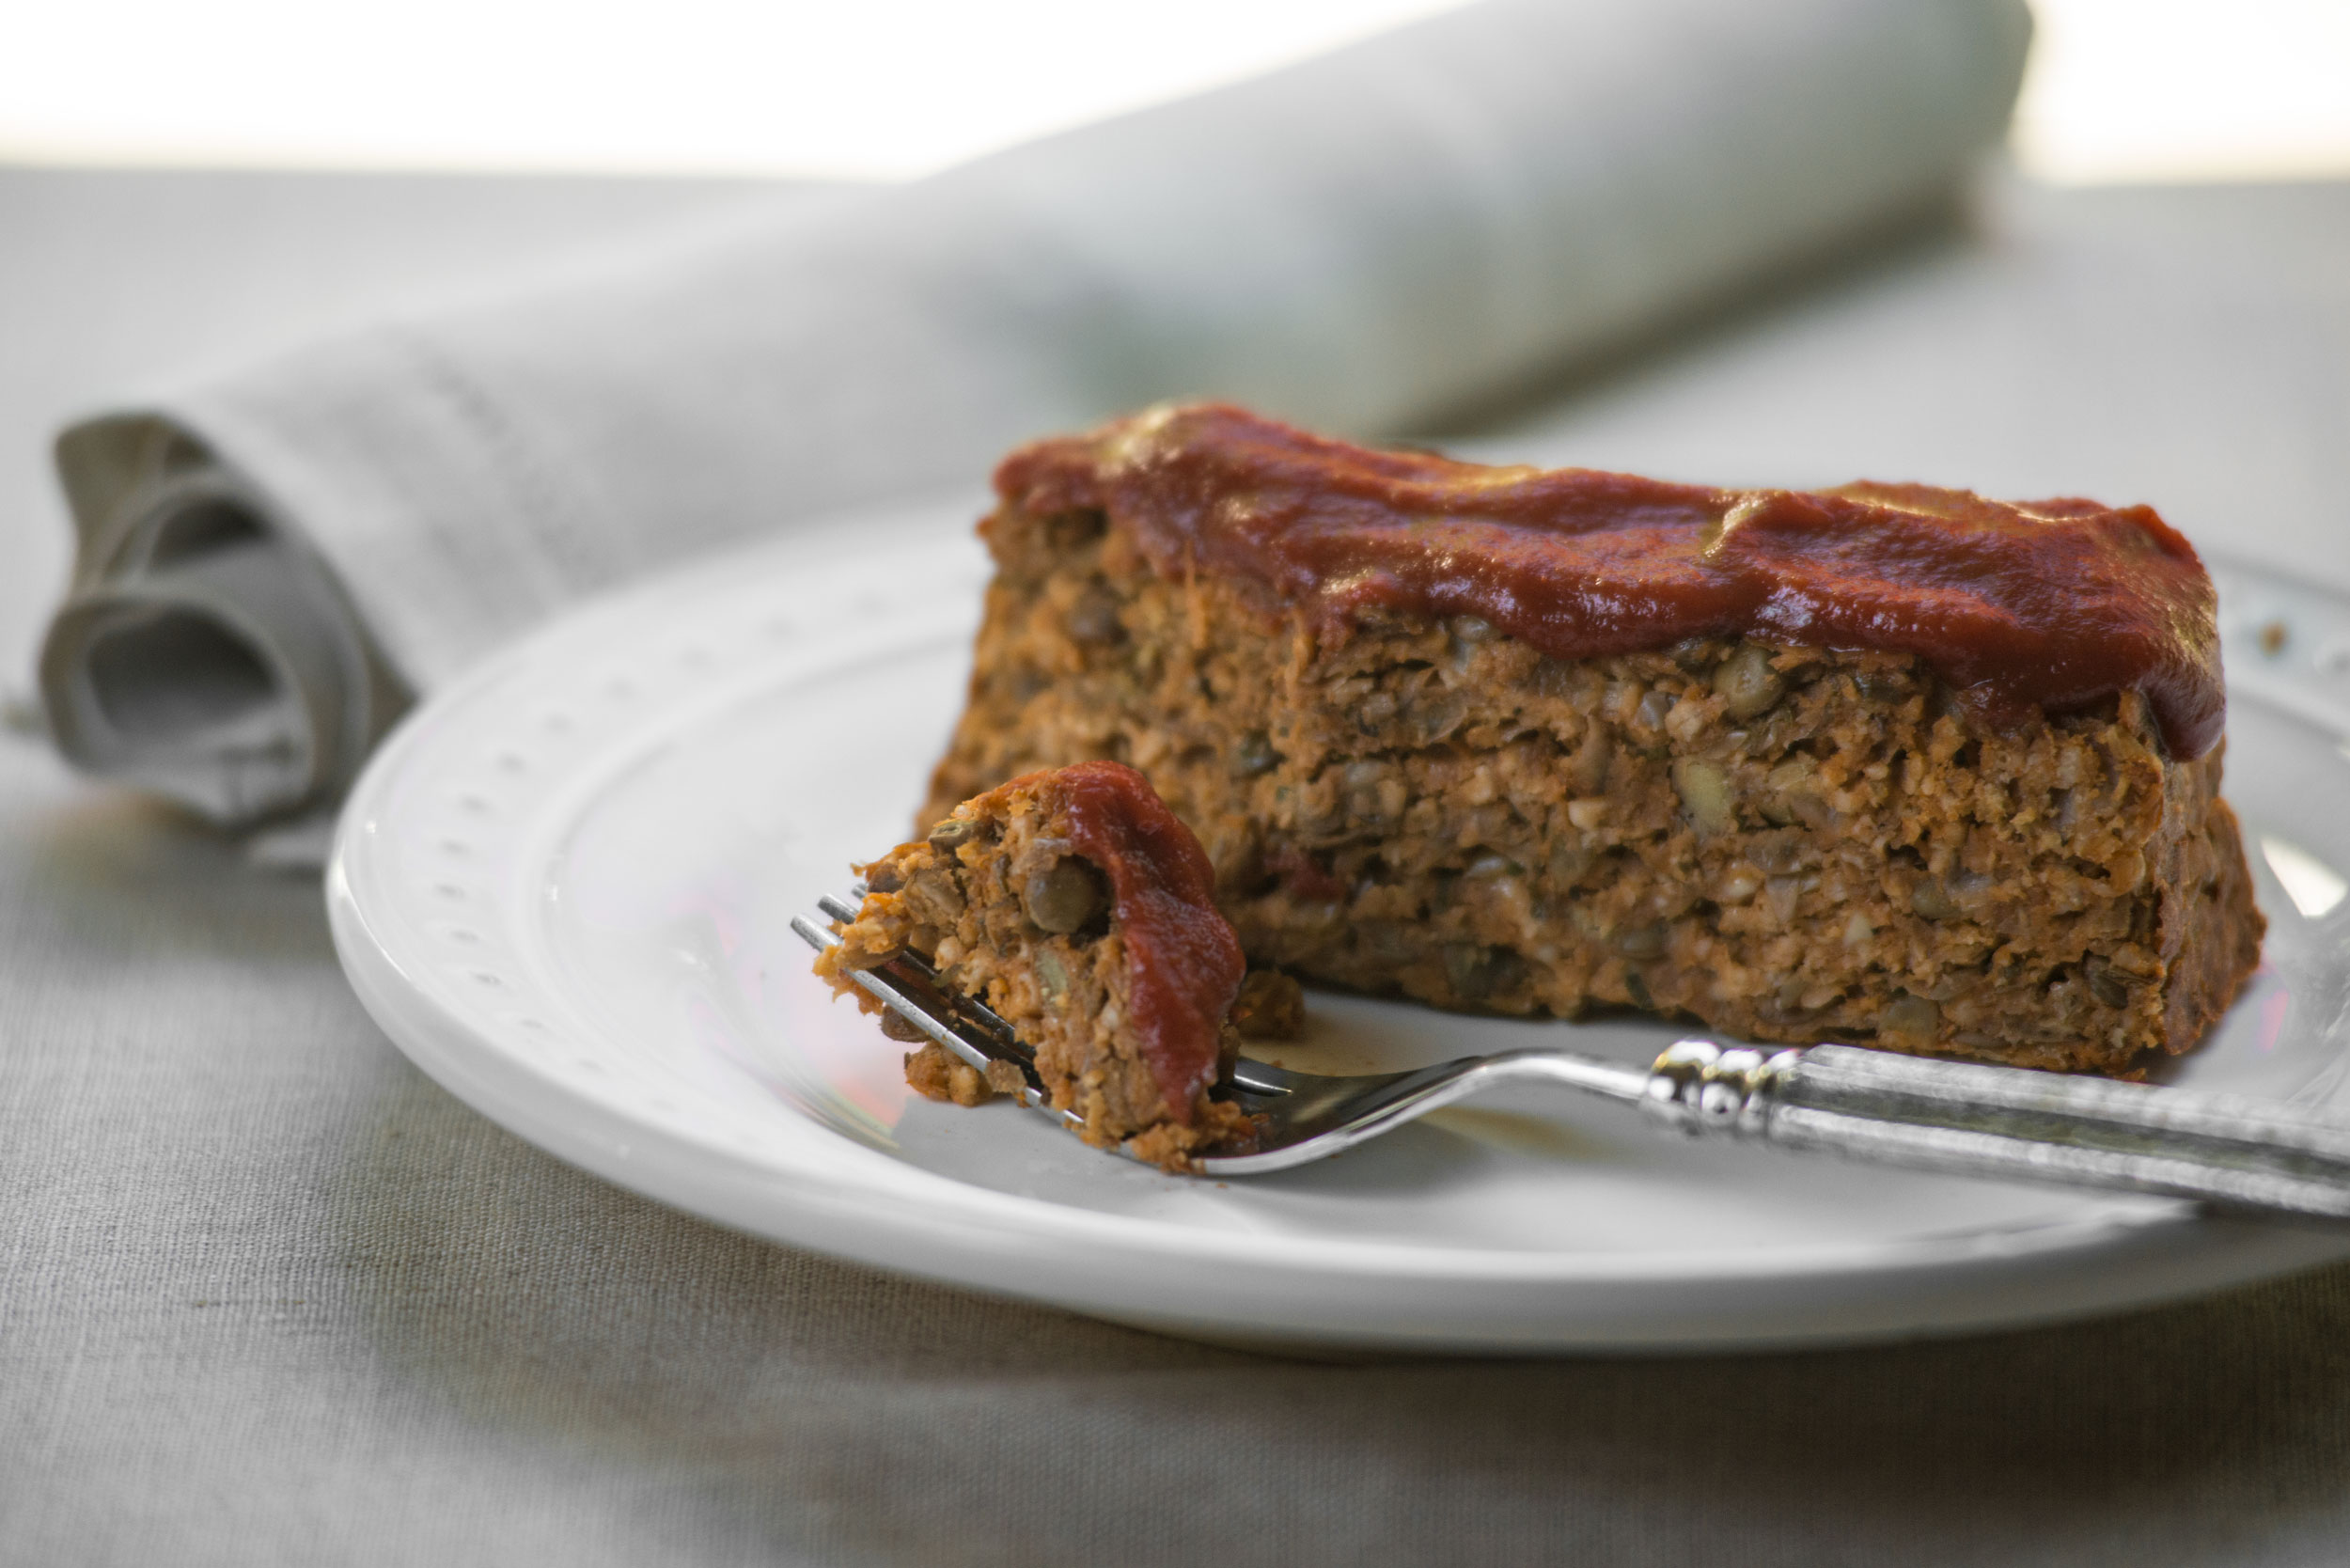 Vegetarian Lentil Loaf with Tomato-Maple BBQ Sauce